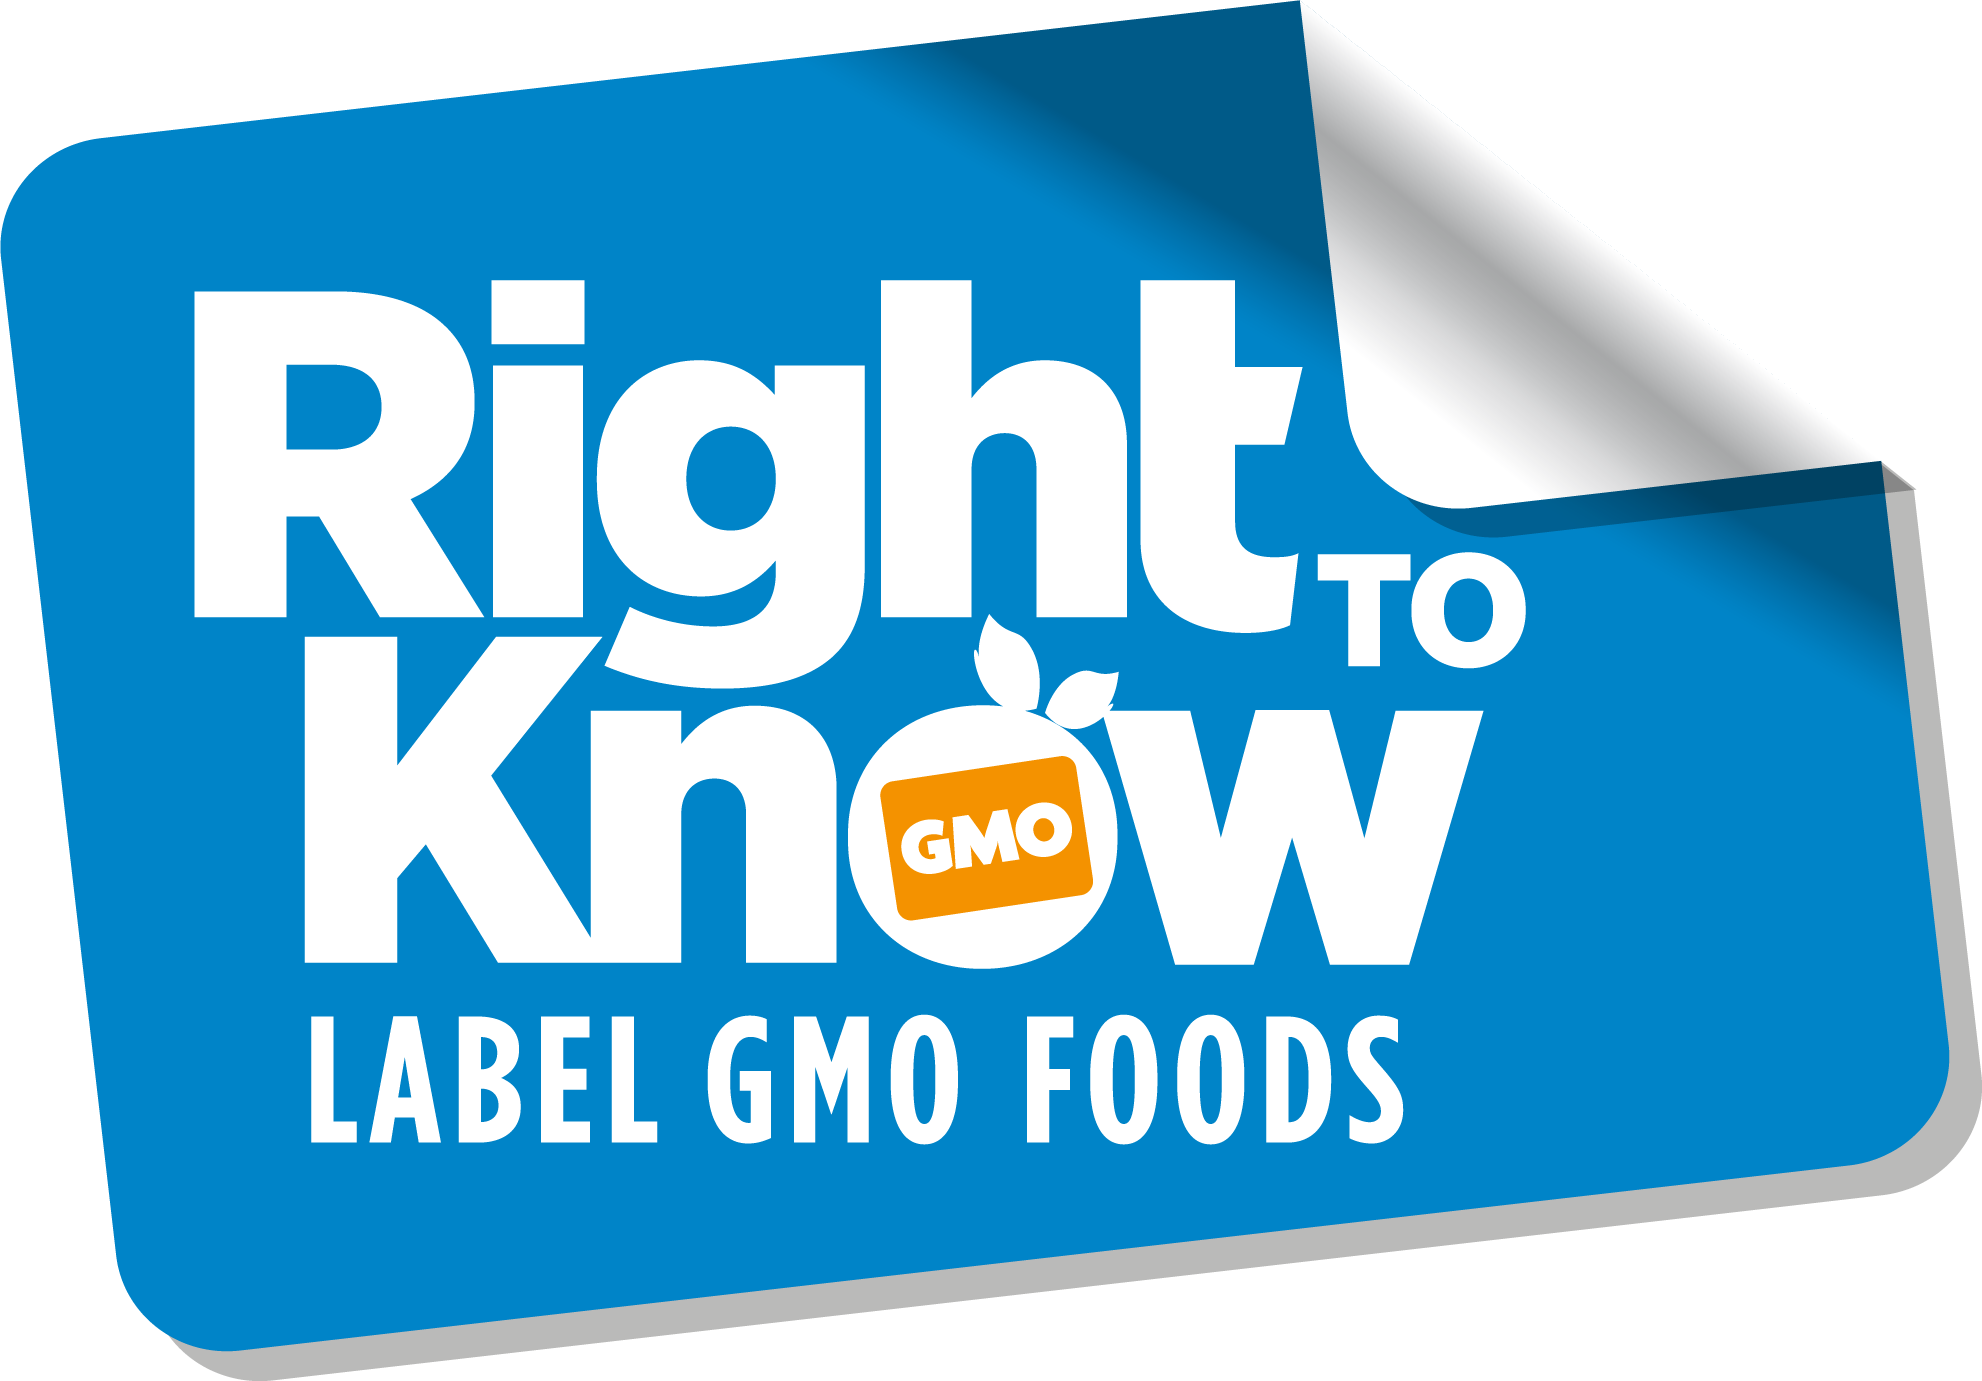 laws should be pass to label foods with genetically modified organisms A hot issue in recent years has been foods made from genetically modified organisms (gmo), and the biggest controversy surrounding genetically engineered (ge) foods is whether they should be labeled as a gmo product.